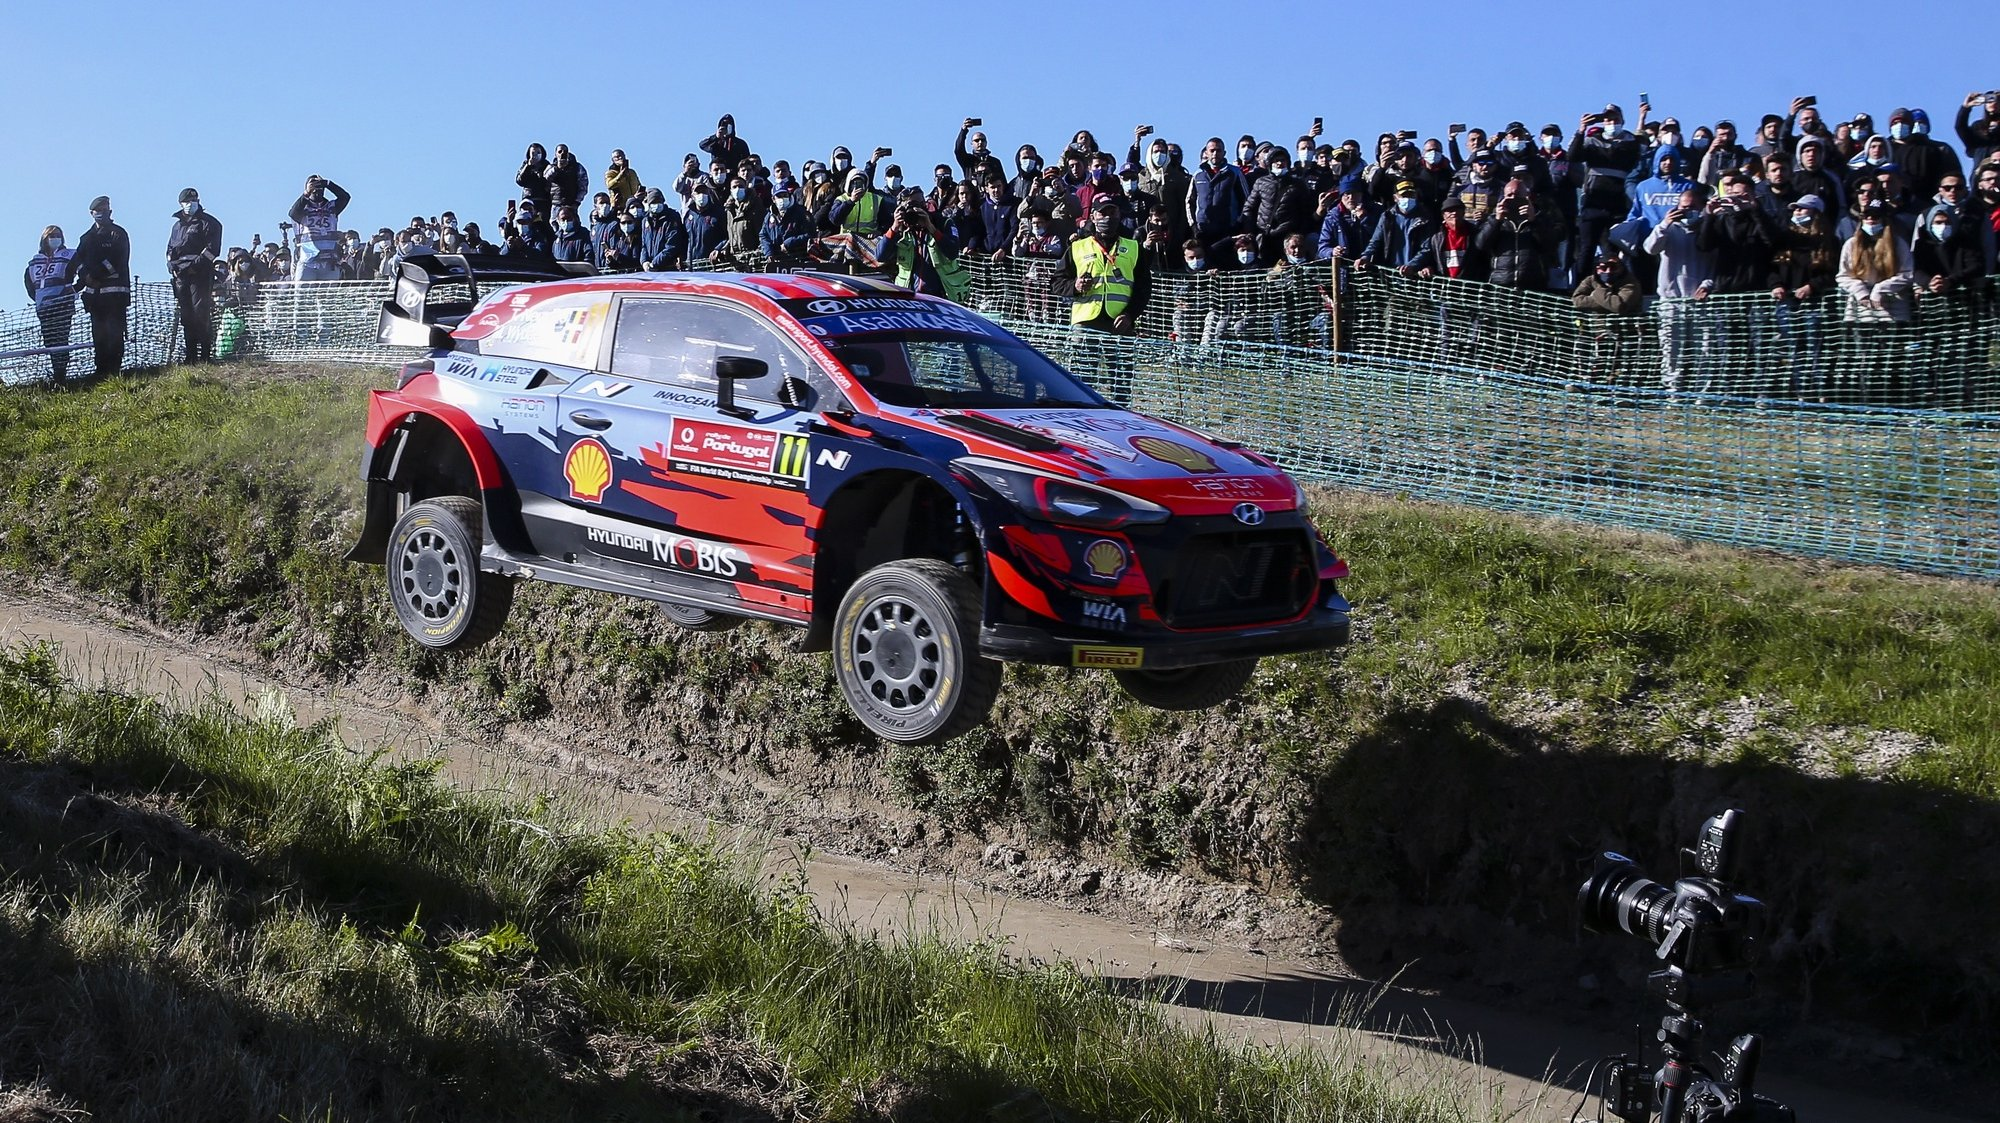 epaselect epa09222143 Thierry Neuville of Belgium drives his Hyundai i20 coupe WRC during Day 2 of the Rally Portugal 2021 as part of the FIA World Rally Championship (WRC) near Fafe, Portugal, 23 May 2021.  EPA/JOSE COELHO